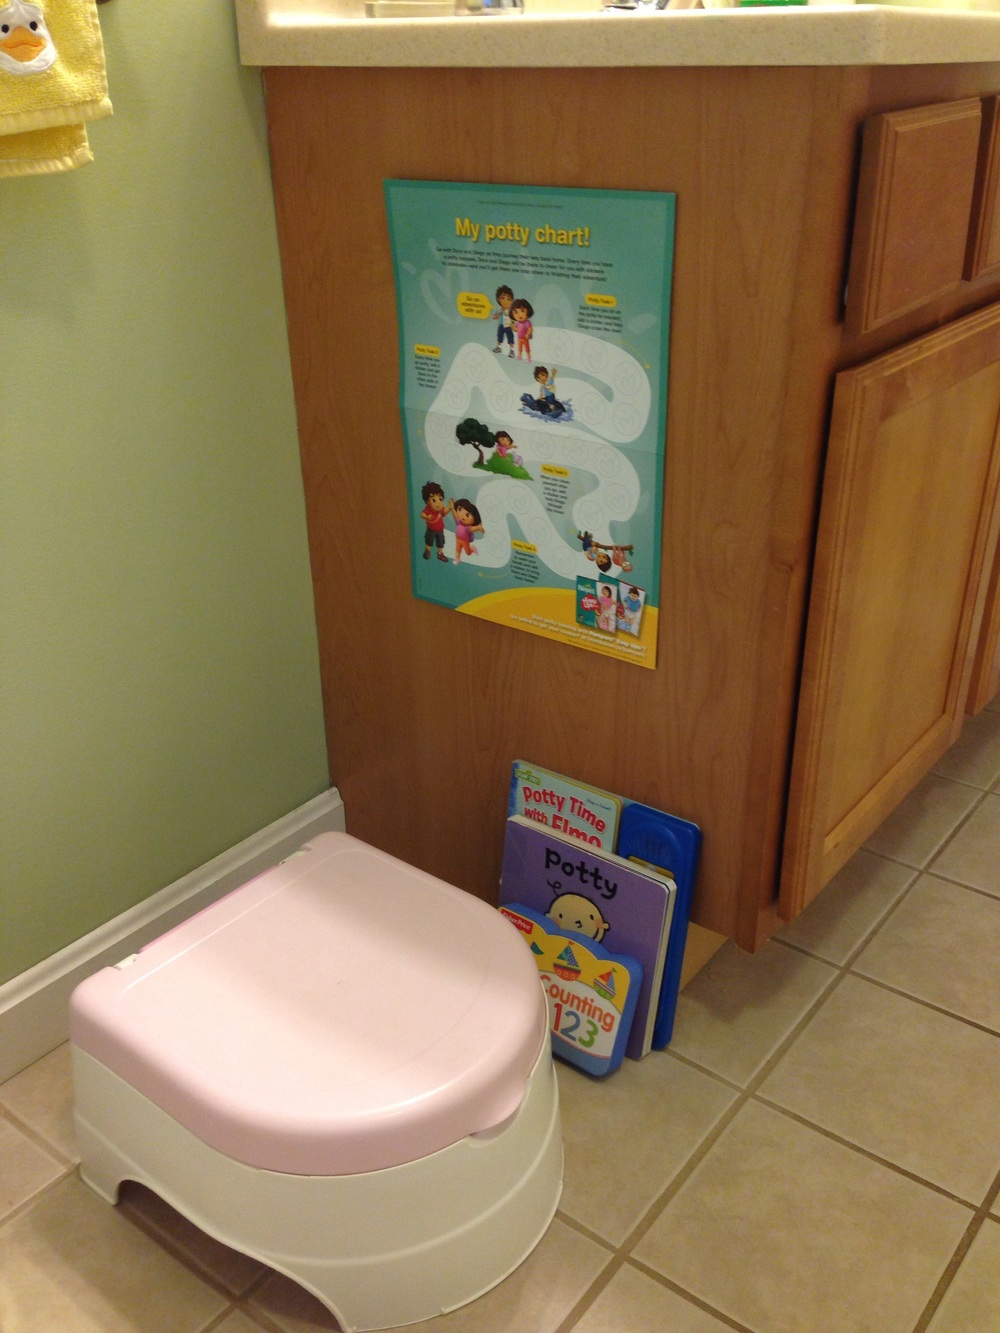 Great potty training setup:  potty, books, rewards chart.